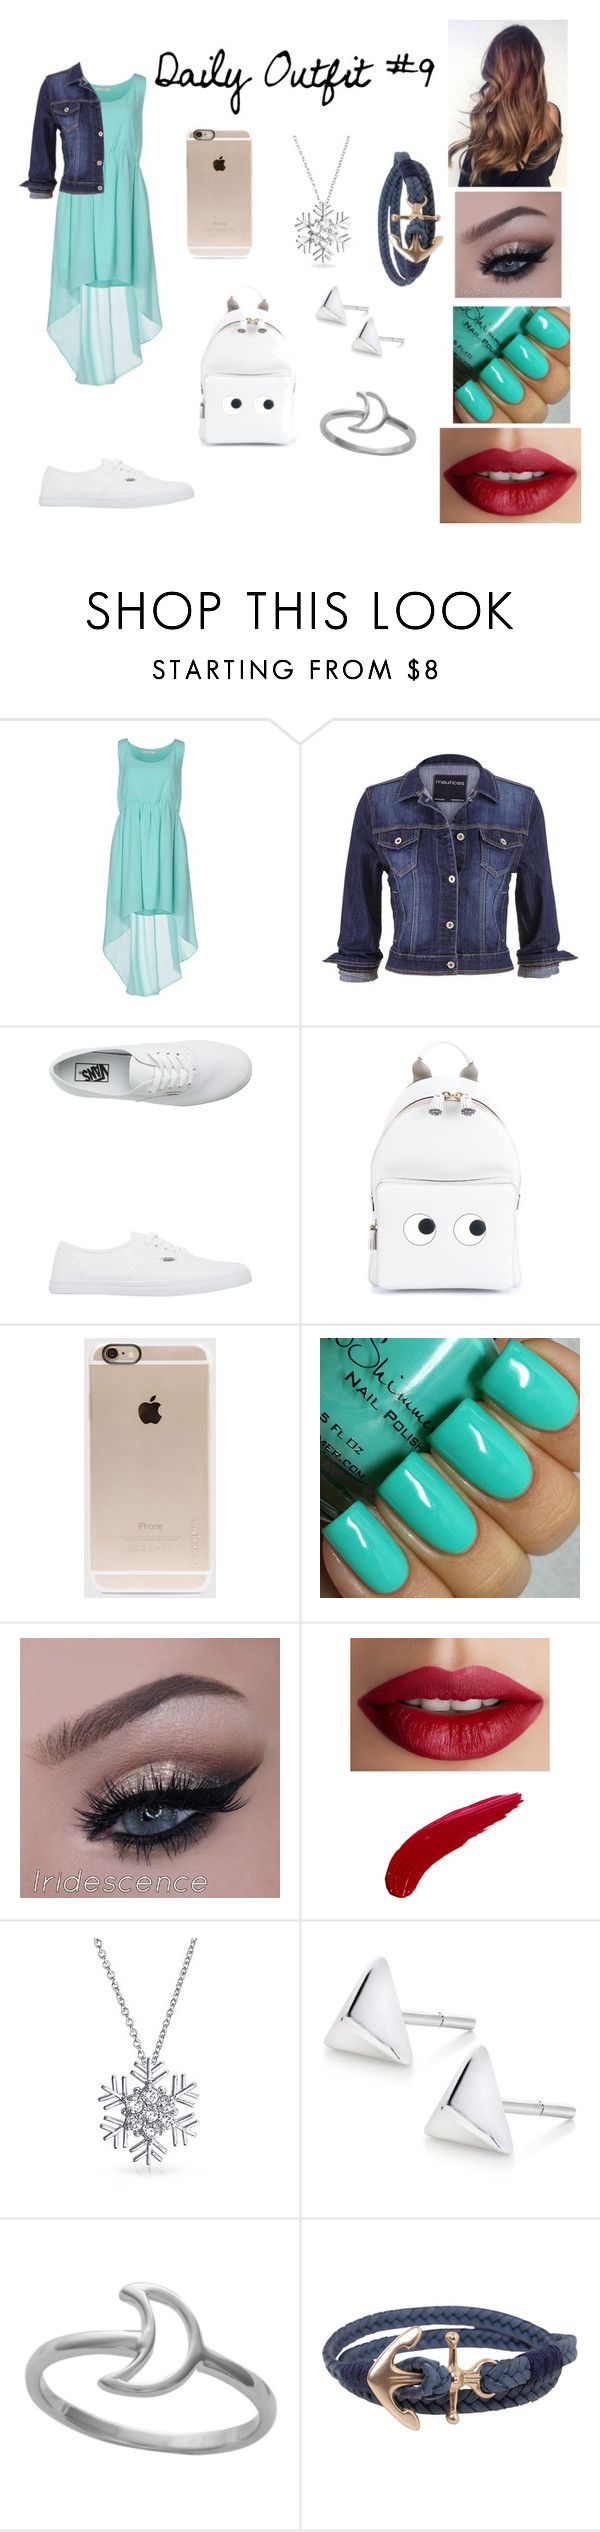 """""""Daily Outfit #9"""" by fall-out-flores ❤ liked on Polyvore featuring Duck Farm, maurices, Vans, Anya Hindmarch, Incase, TheBalm, Bling Jewelry, Humble Chic, women's clothing and women"""